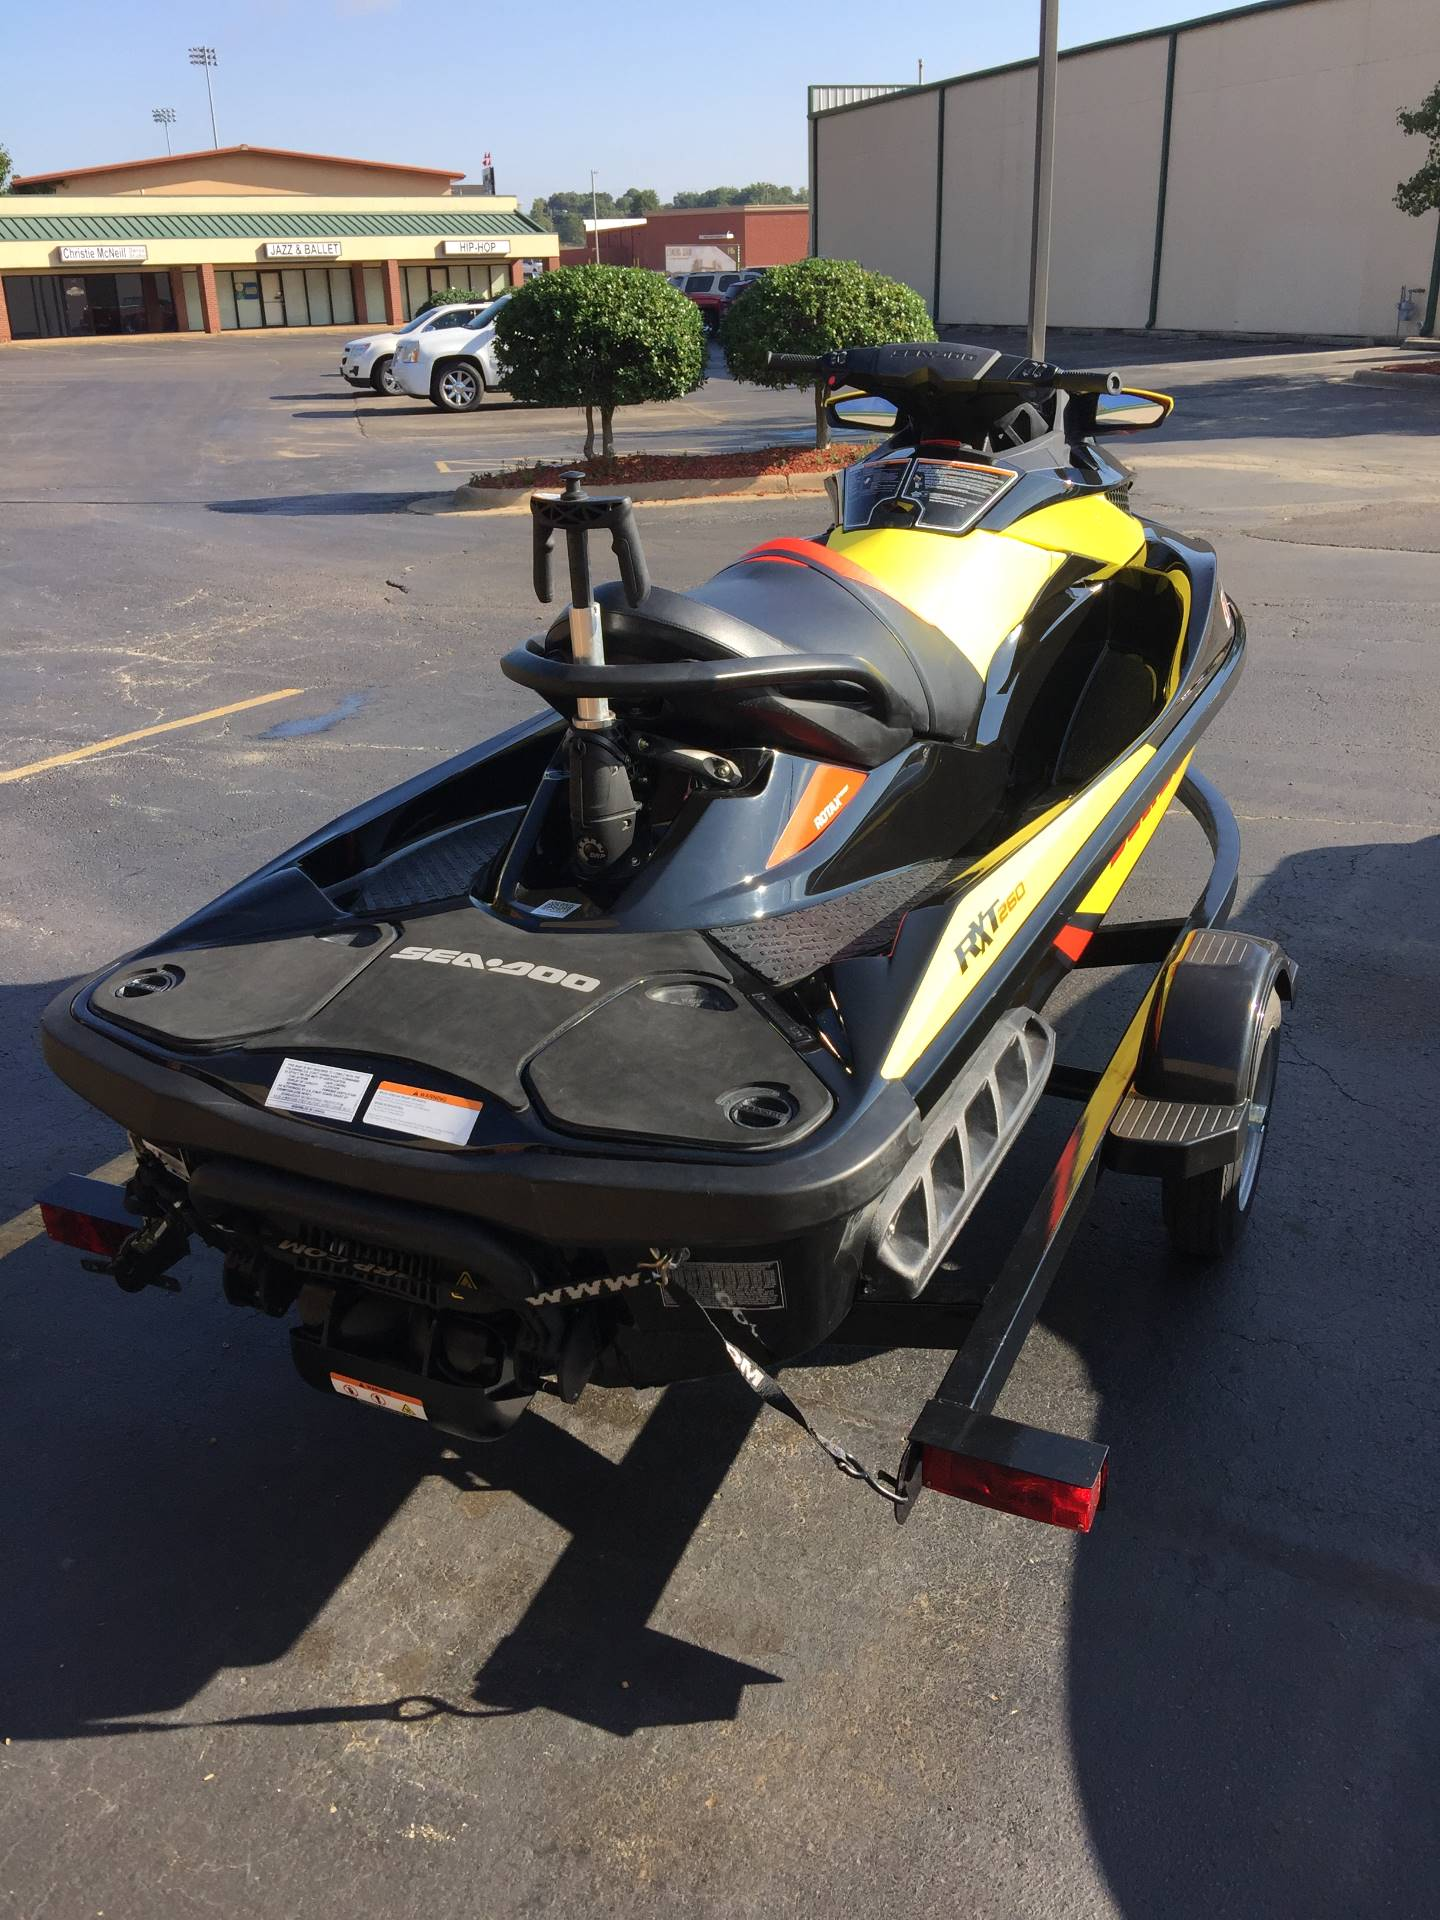 2015 Sea-Doo RTX260 in Mountain Home, Arkansas